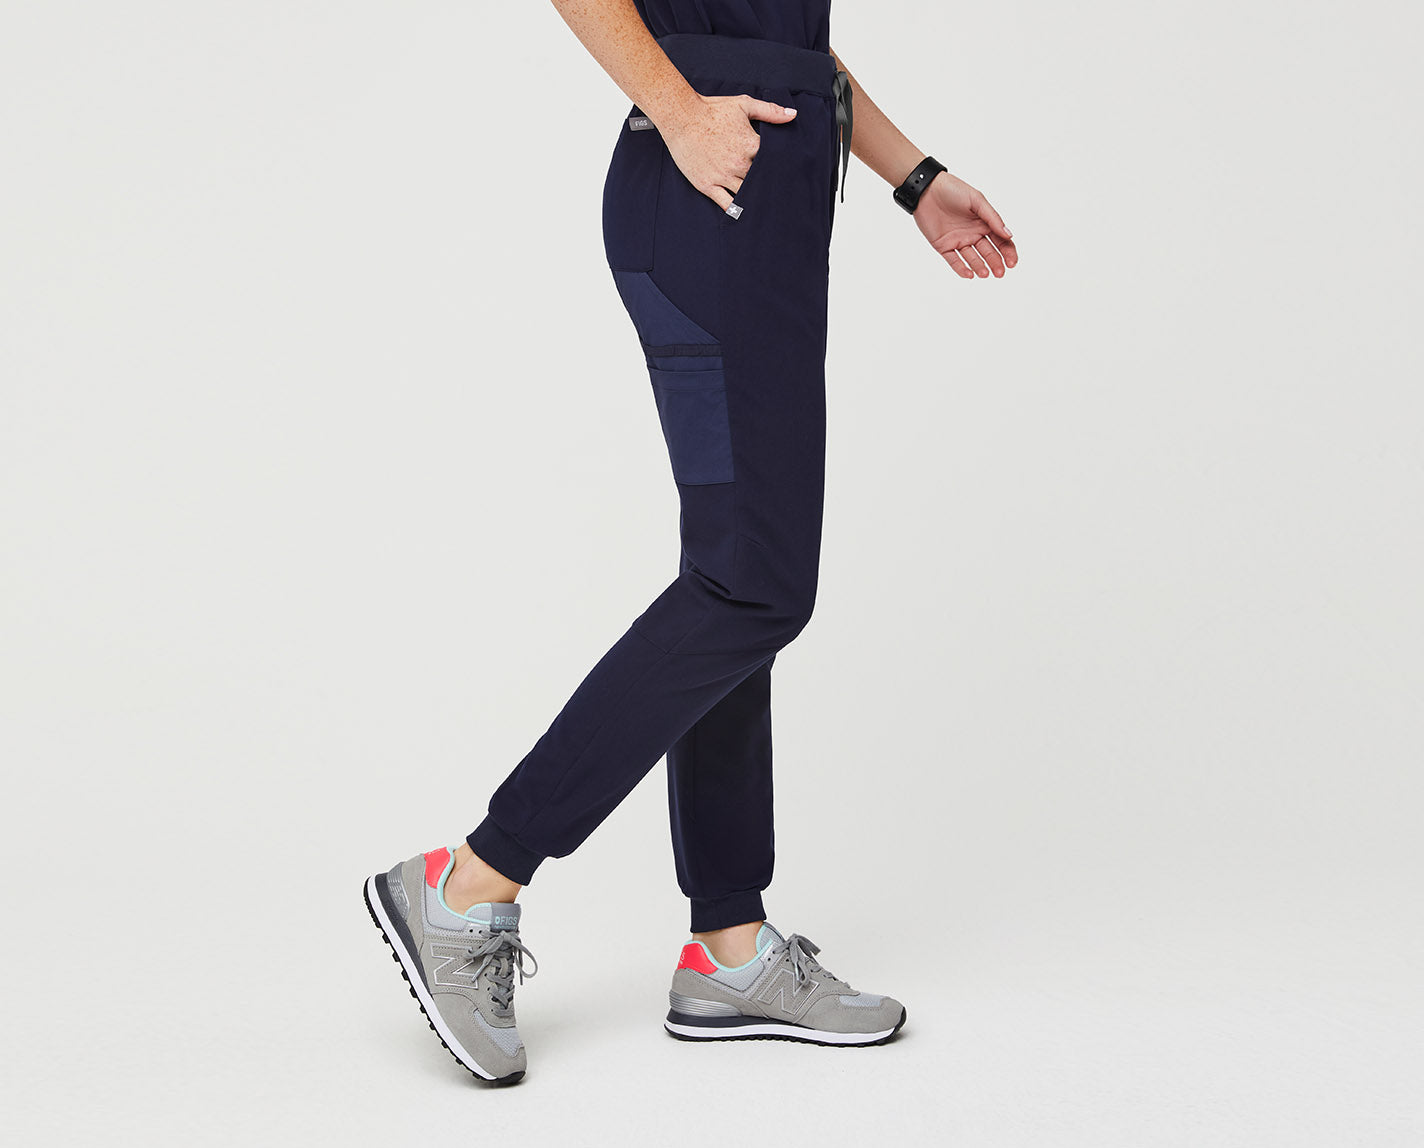 When being busy and comfortable is both needed and necessary, these skinny joggers have you covered, on shift to everywhere in between. Featuring a total of 9 pockets and our proprietary FIONx fabric with four-way stretch.